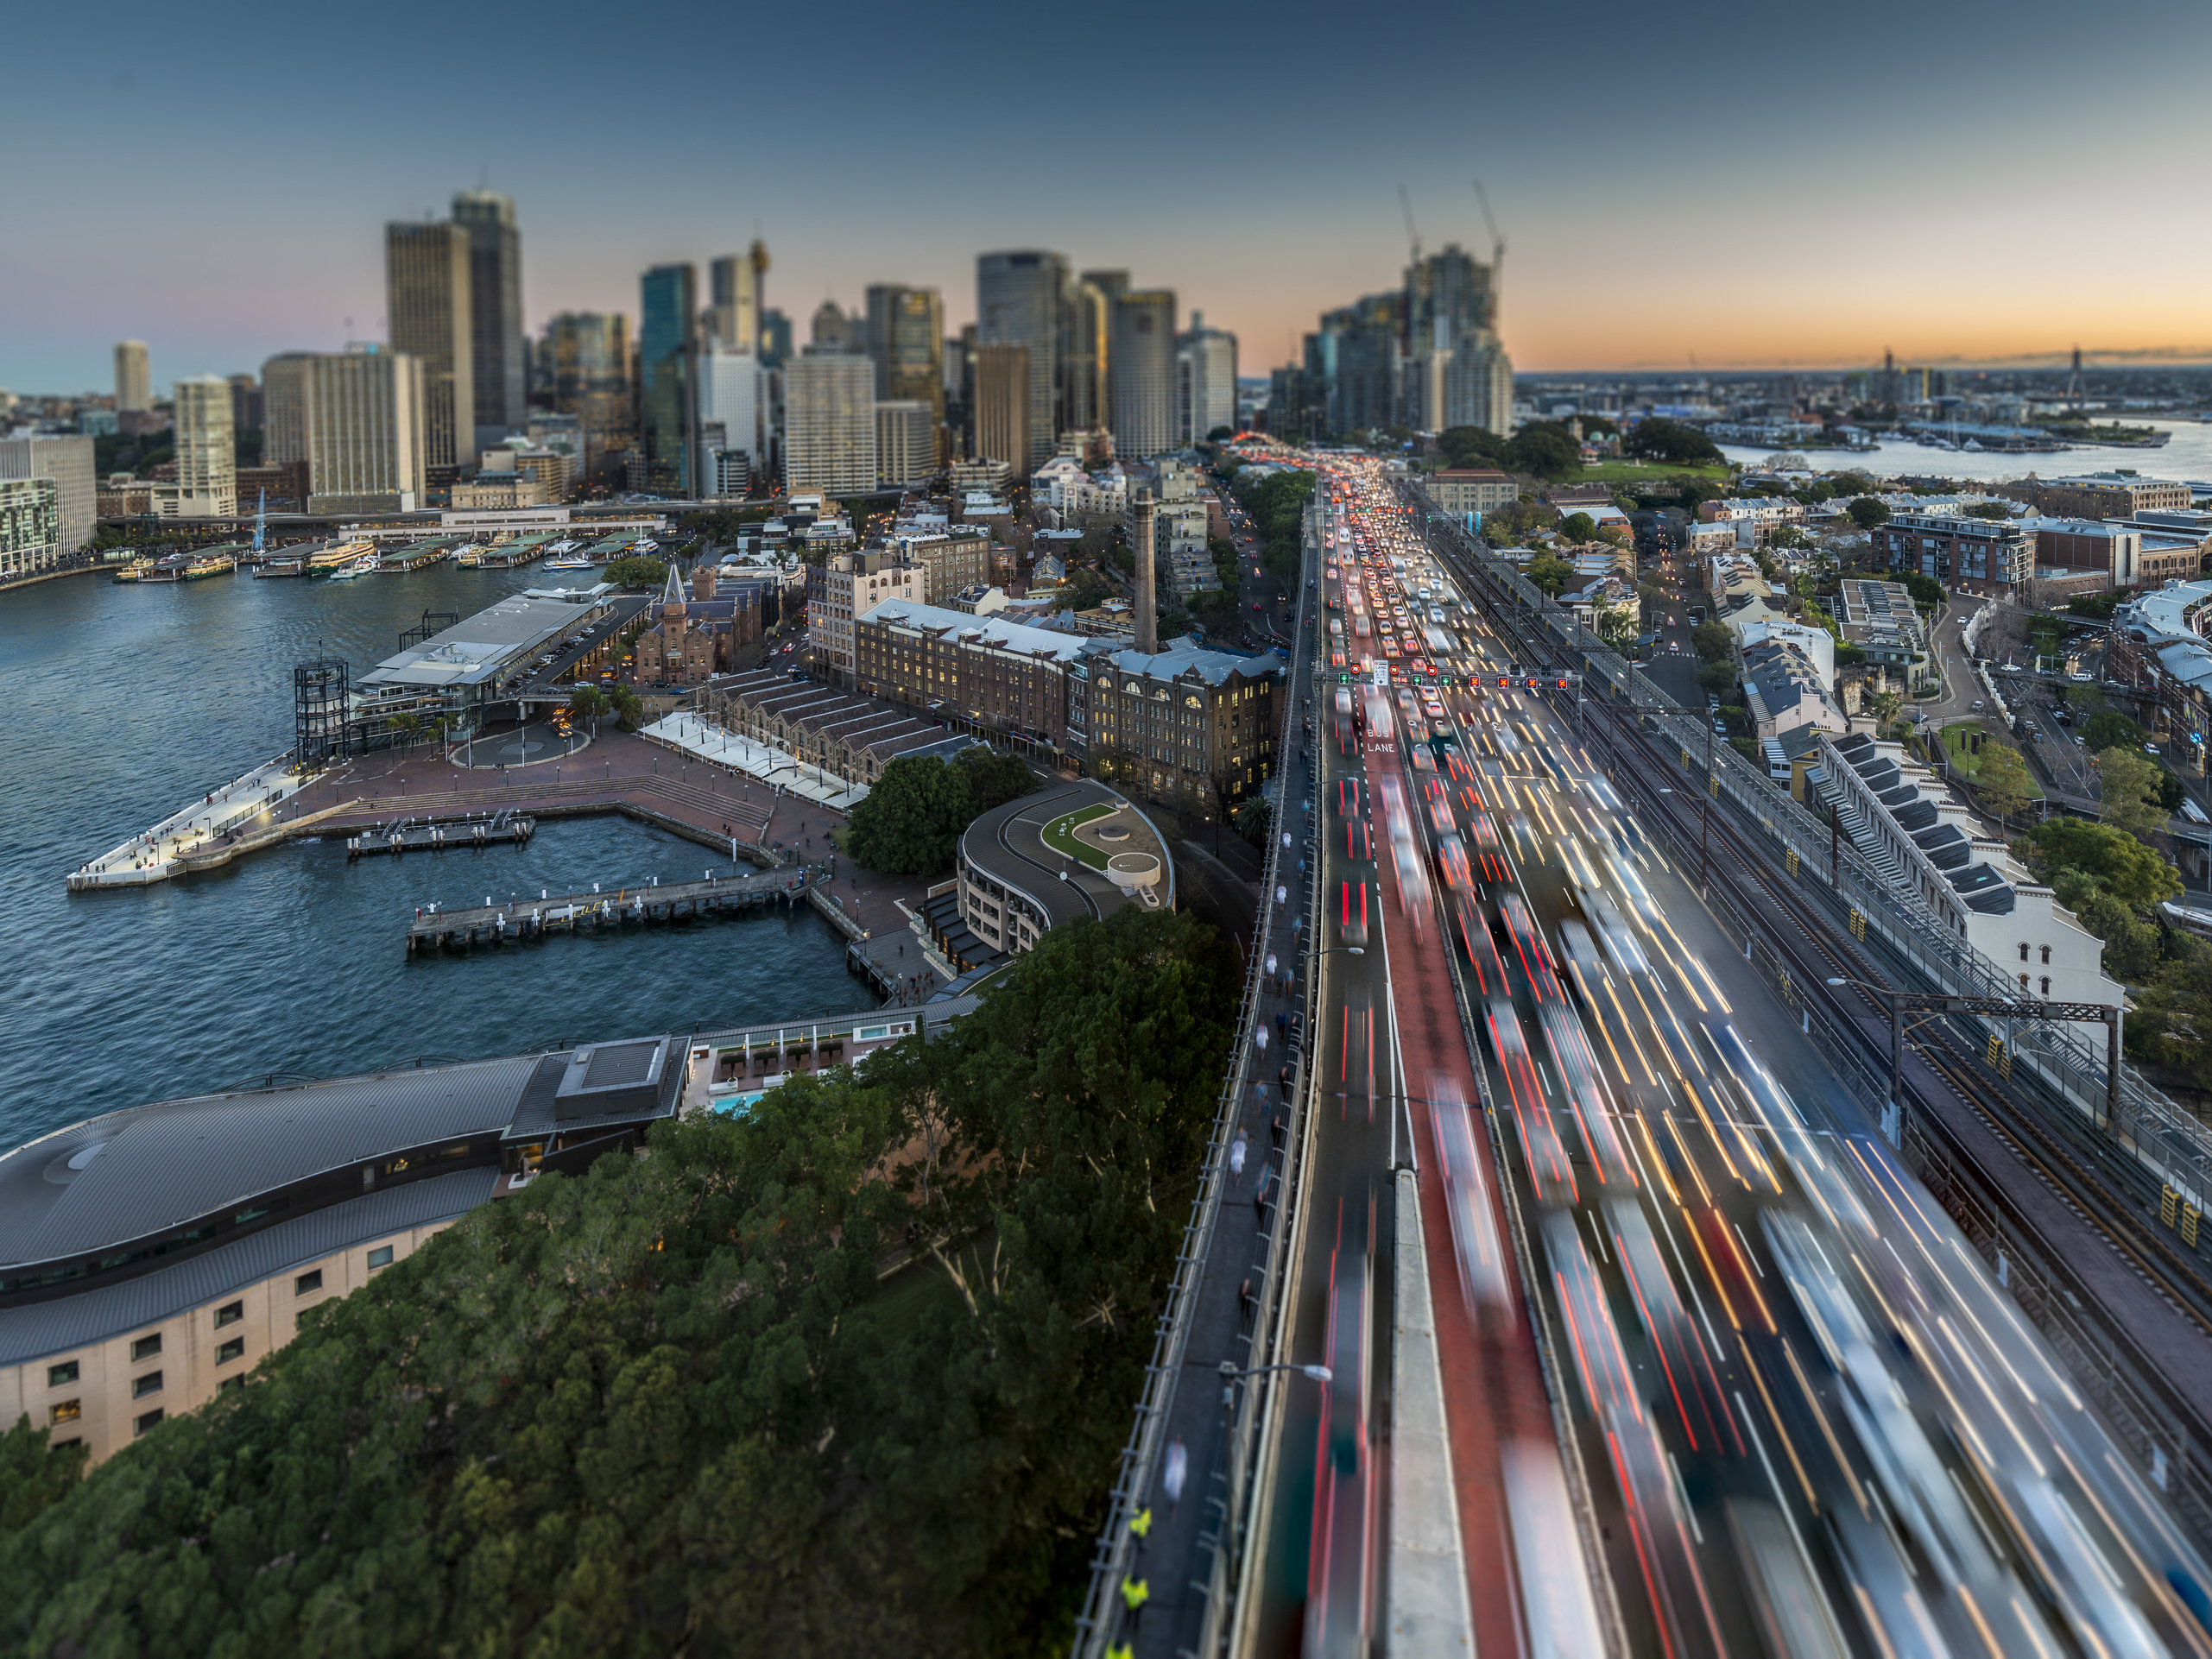 Most of Australia's population is concentrated in big cities like Sydney and Melbourne. Image: shutterstock.com